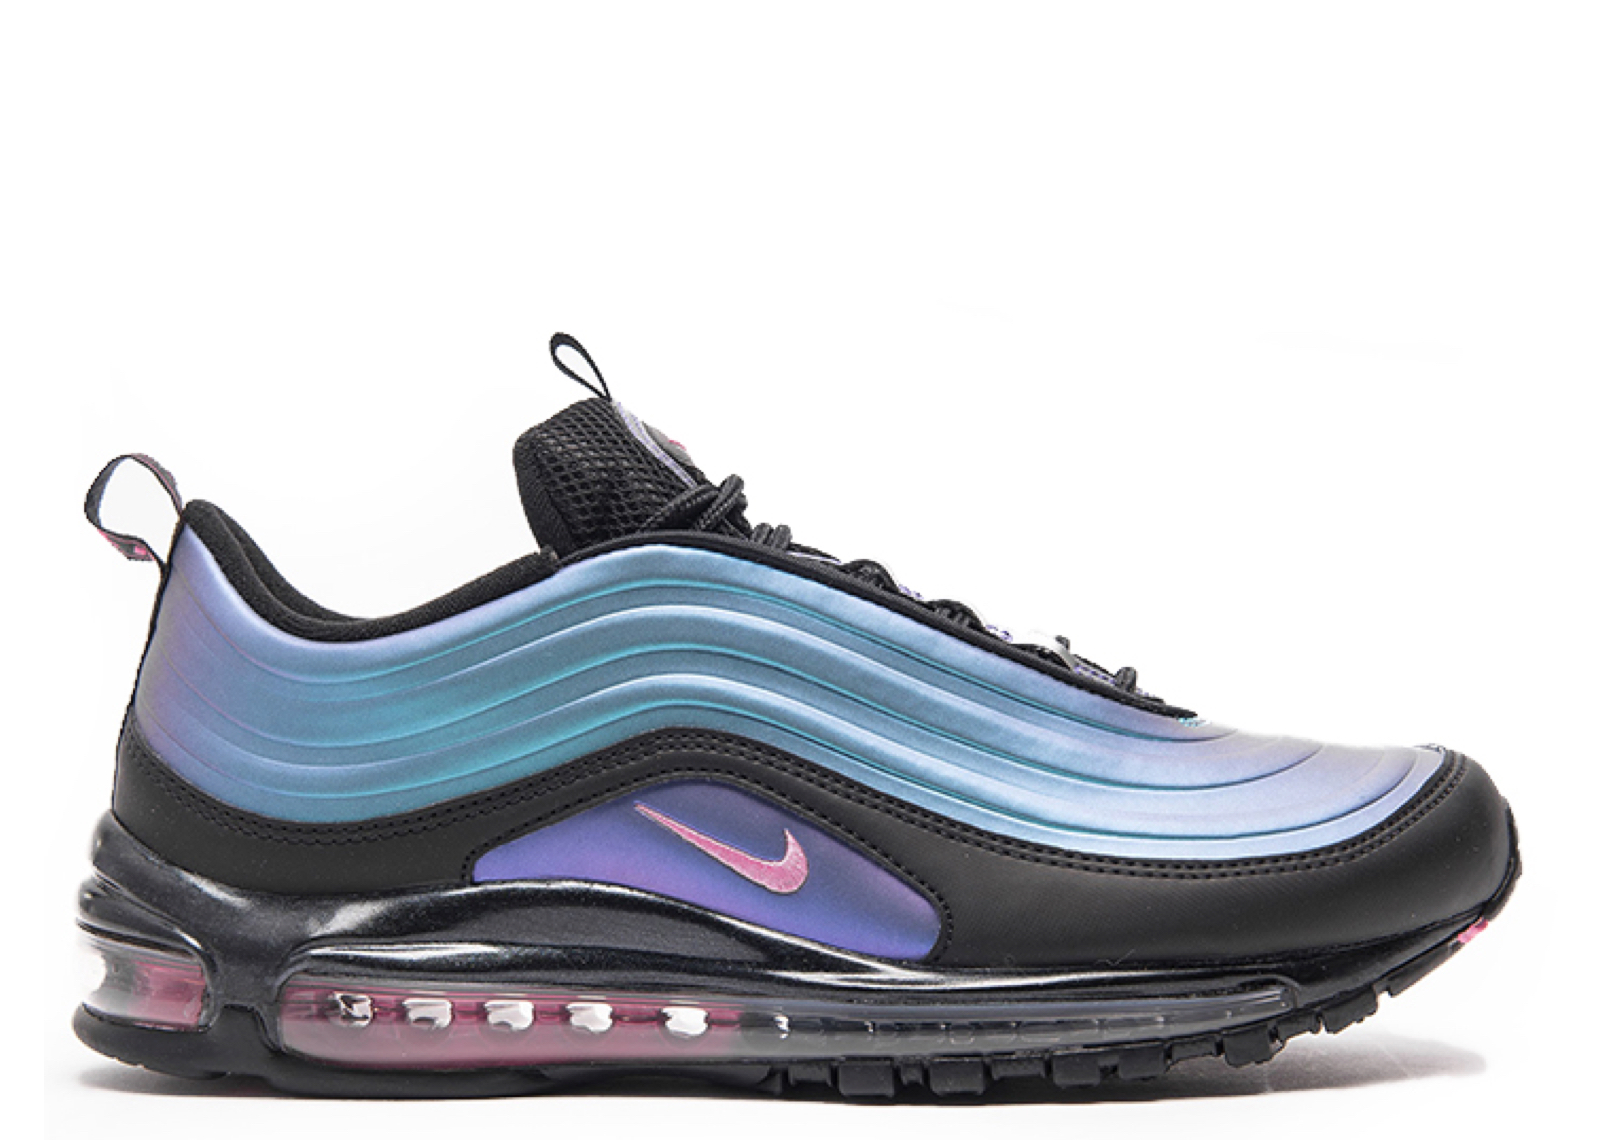 on sale 4ae5e 8b308 Air Max 97 Throwback Future